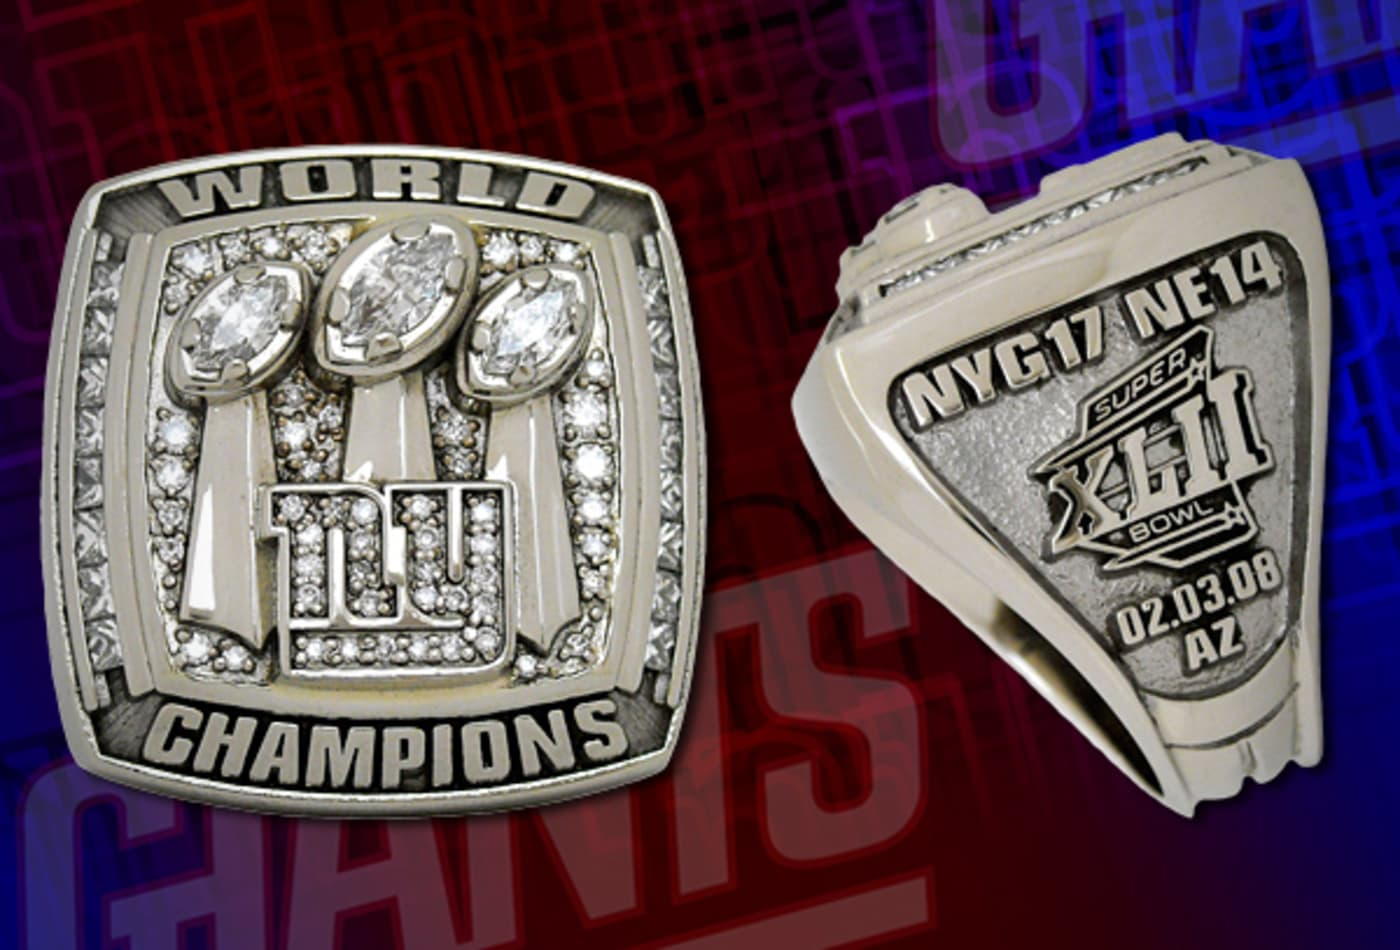 superbowl-rings-2008-new-york-giants.jpg